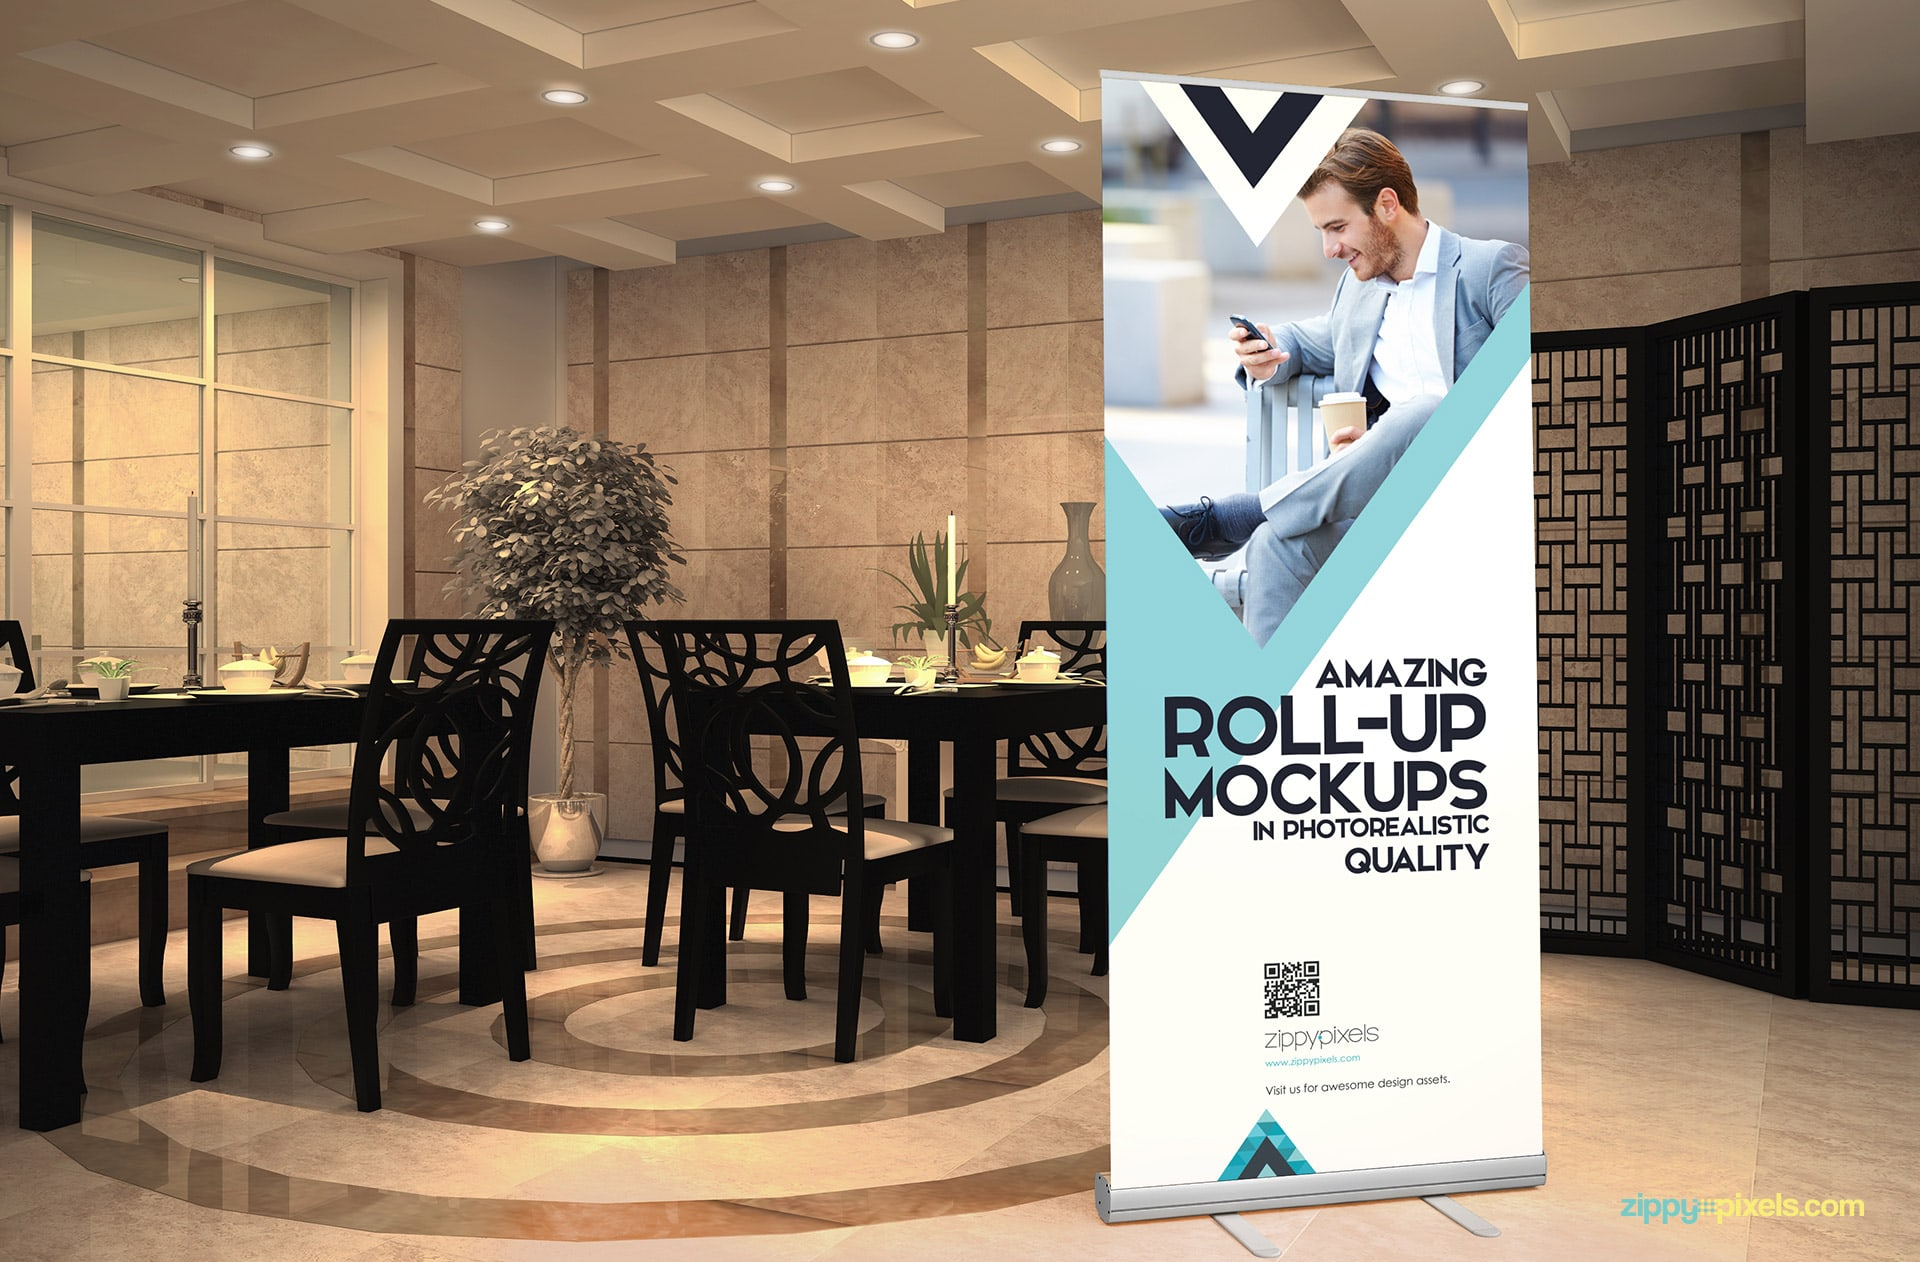 Indulge your client on your next advertising project with these fine roll-up banners.